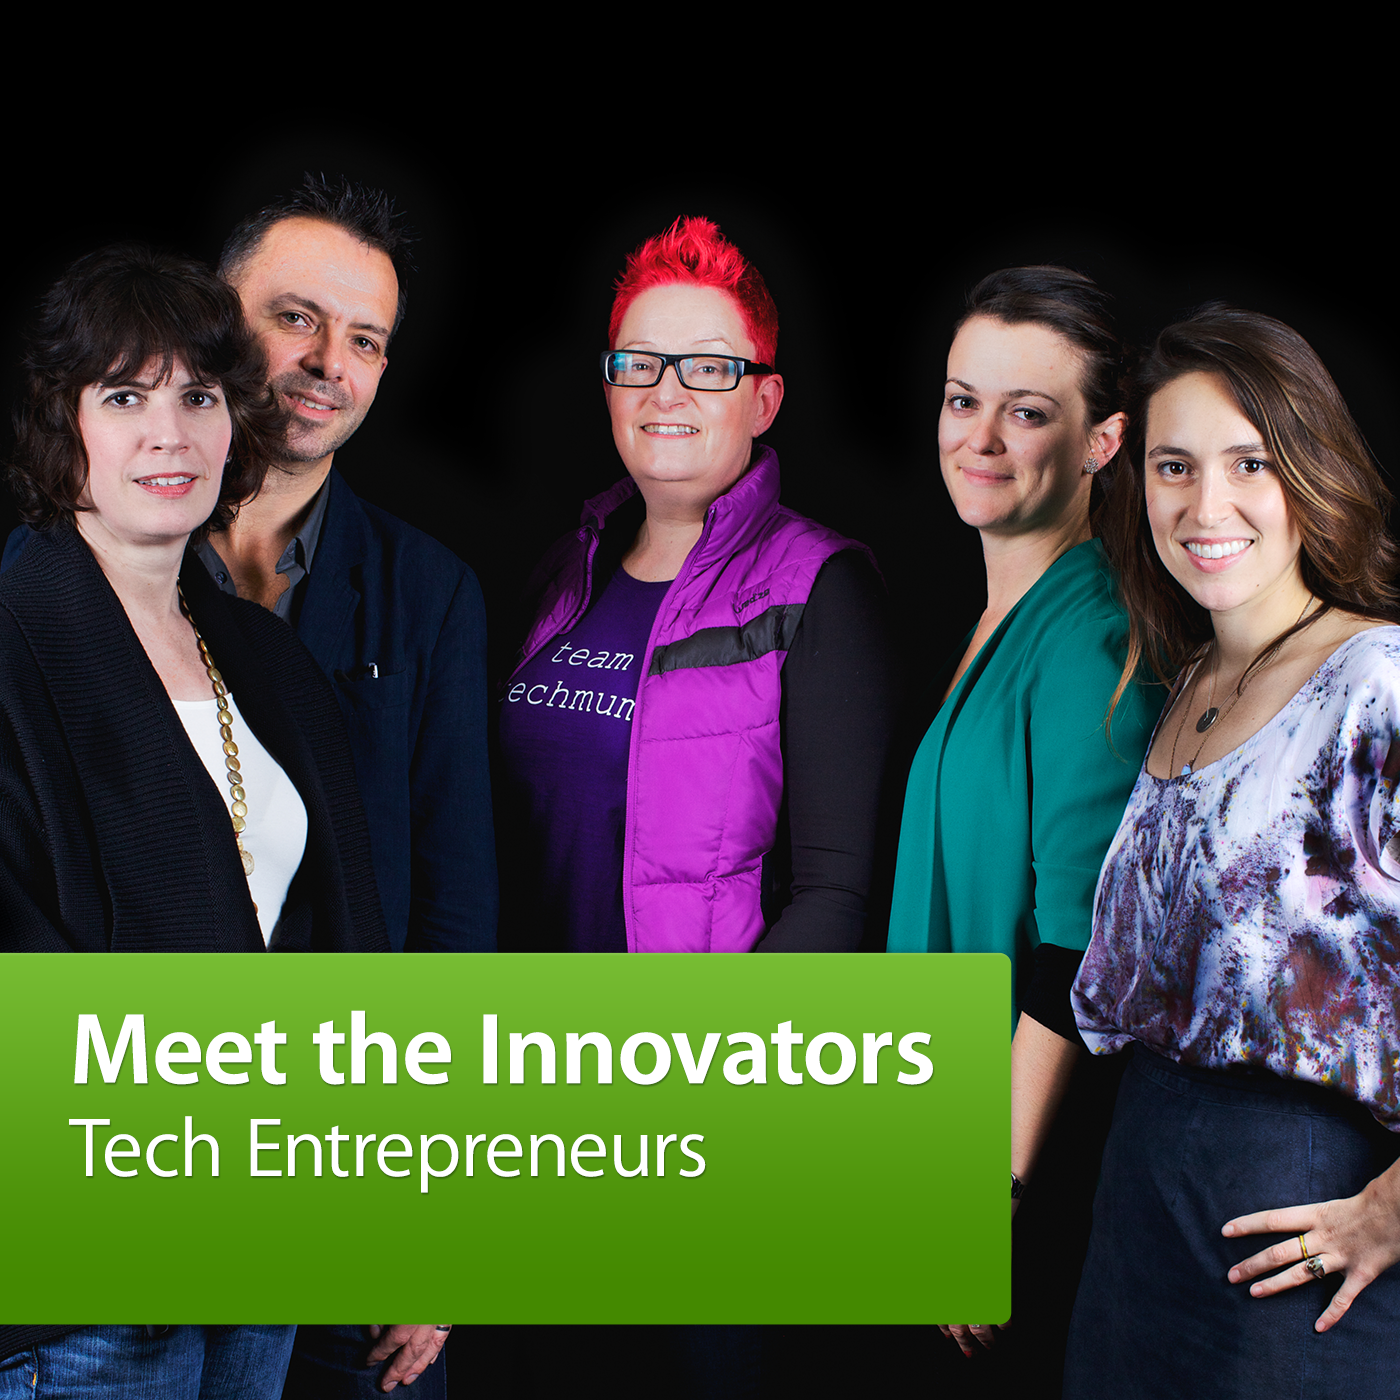 Tech Entrepreneurs: Meet the Innovators